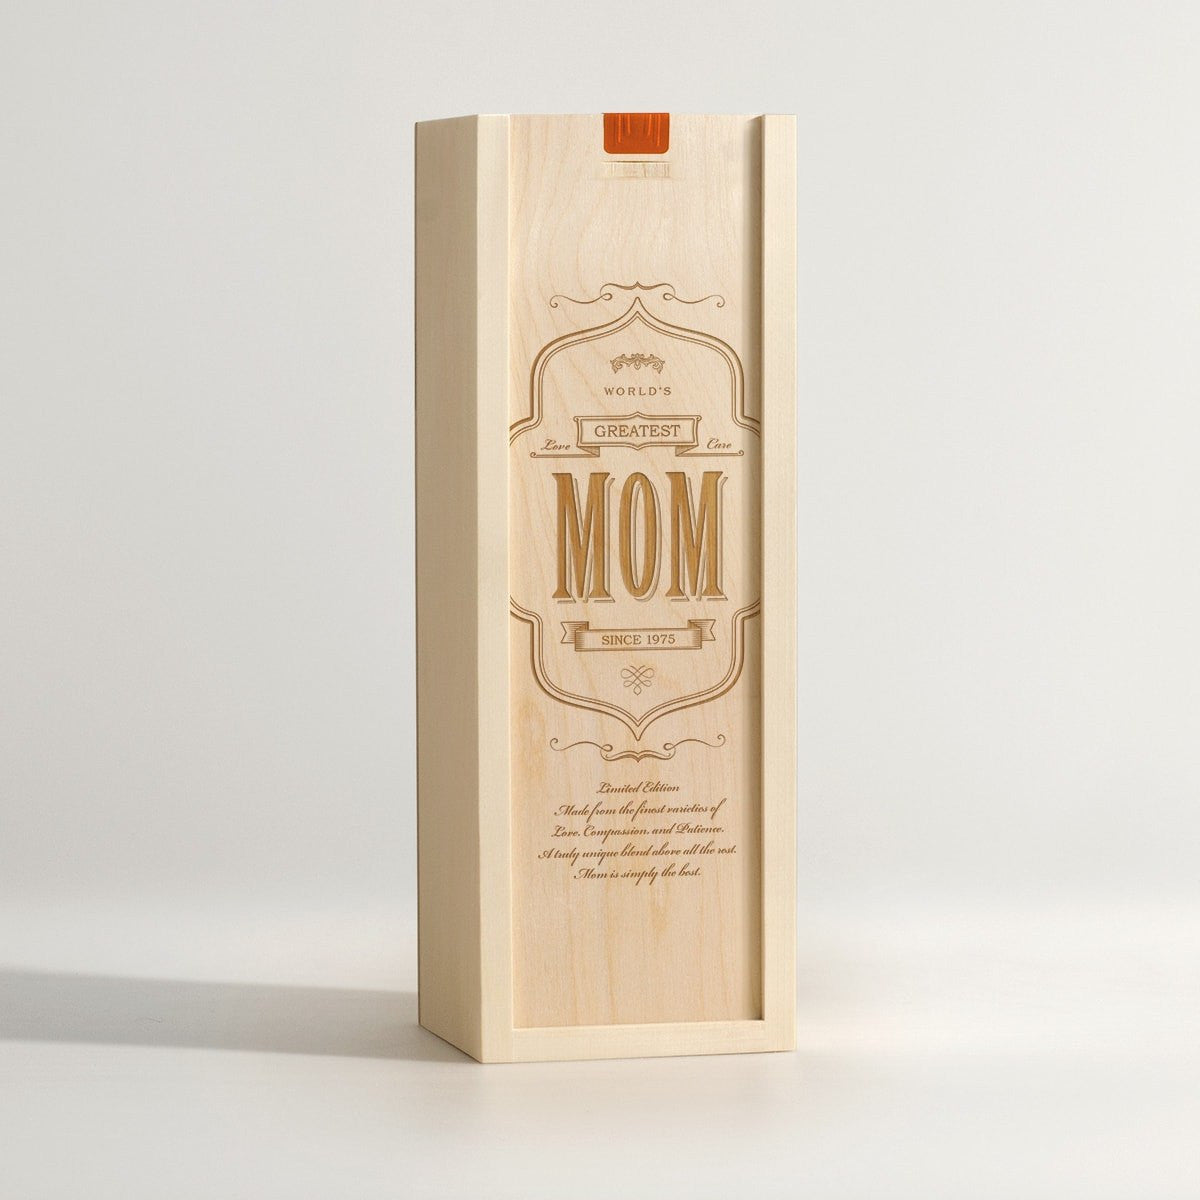 World's Greatest Mom - Wine Box - Main Image